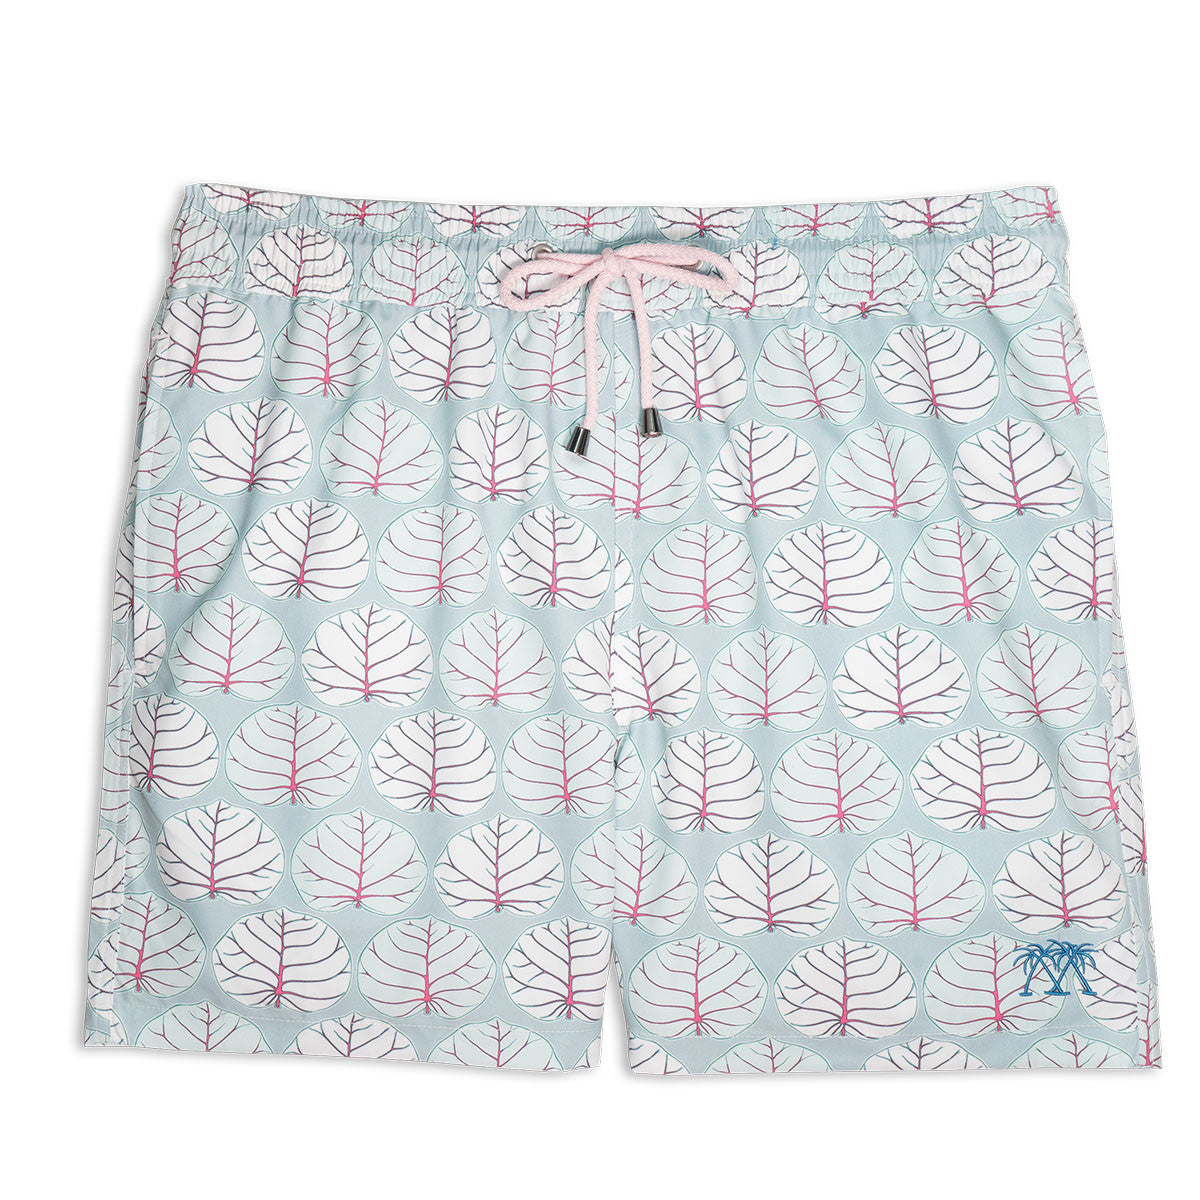 Mens Trunks (Seagrape, Blue/Pink)